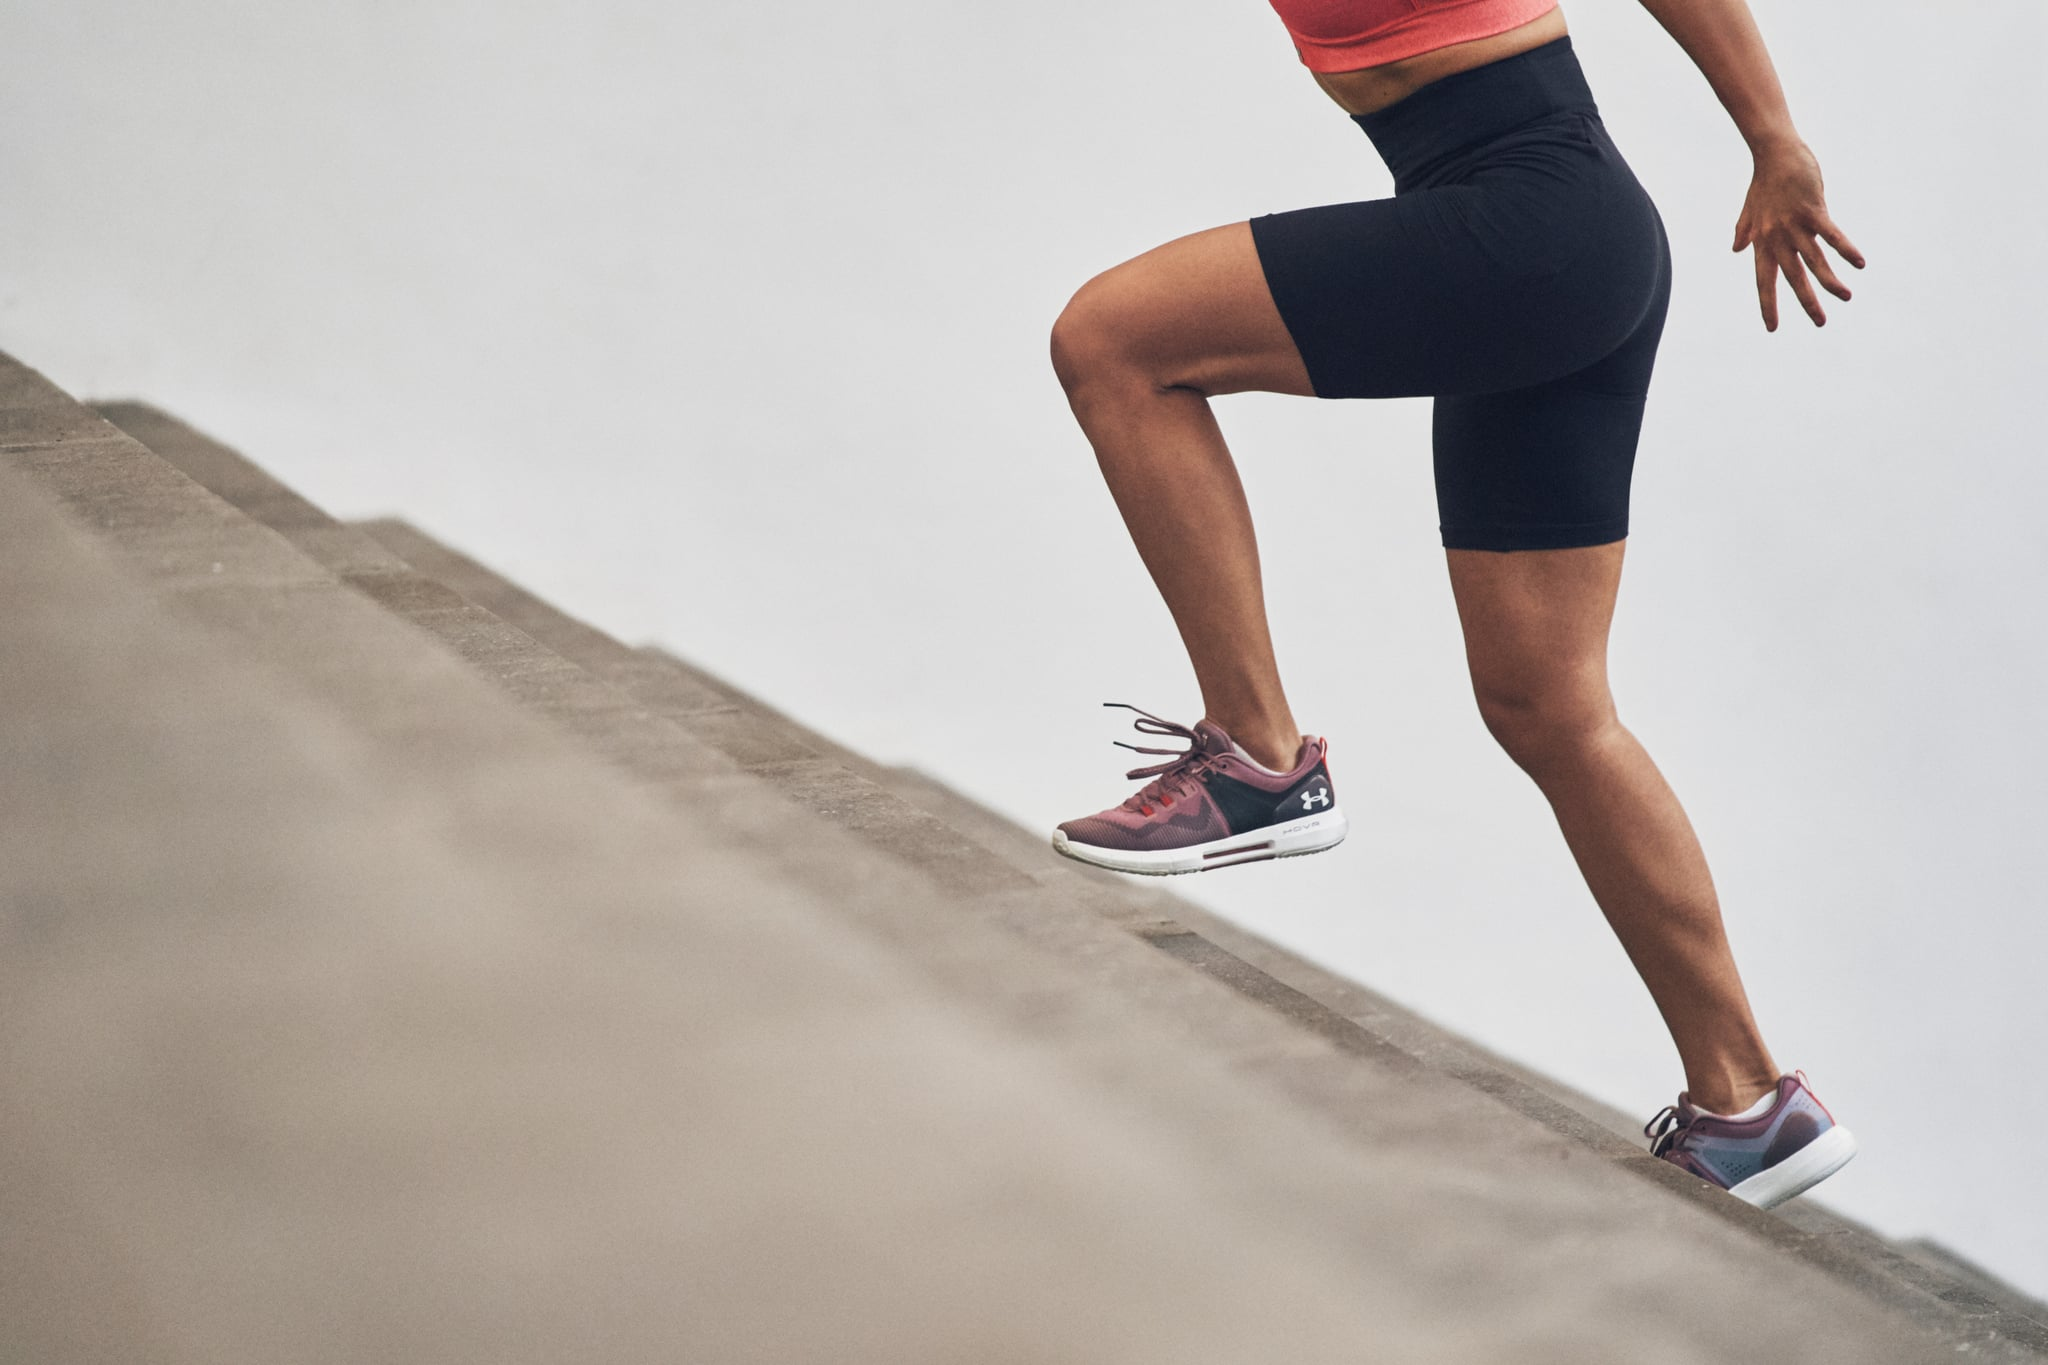 how to protecting knees in running